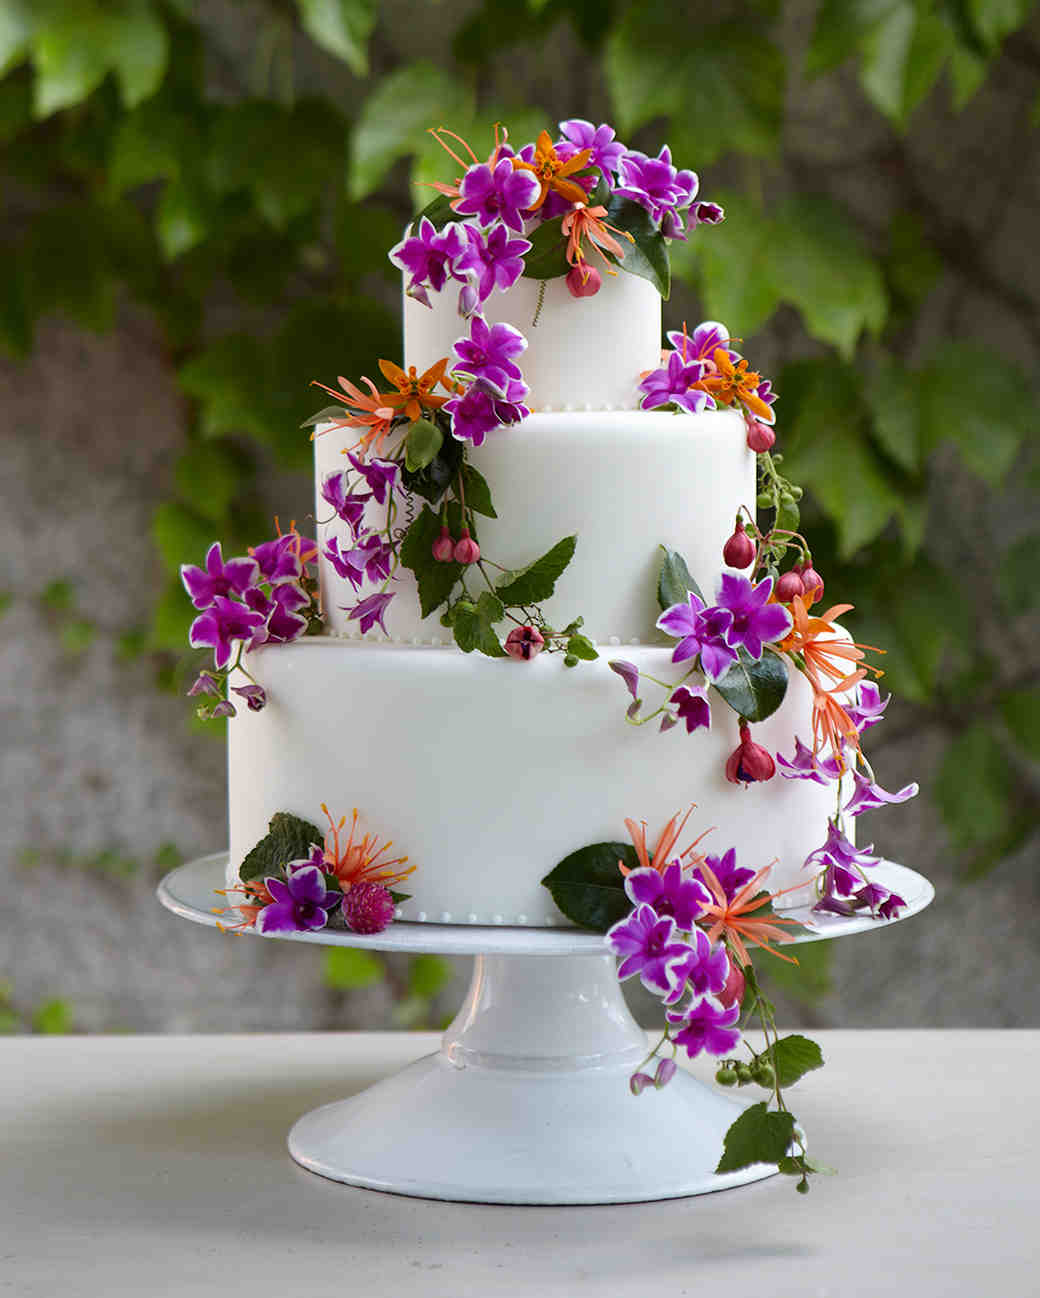 Beach Wedding Flower Ideas: 25 Amazing Beach Wedding Cakes